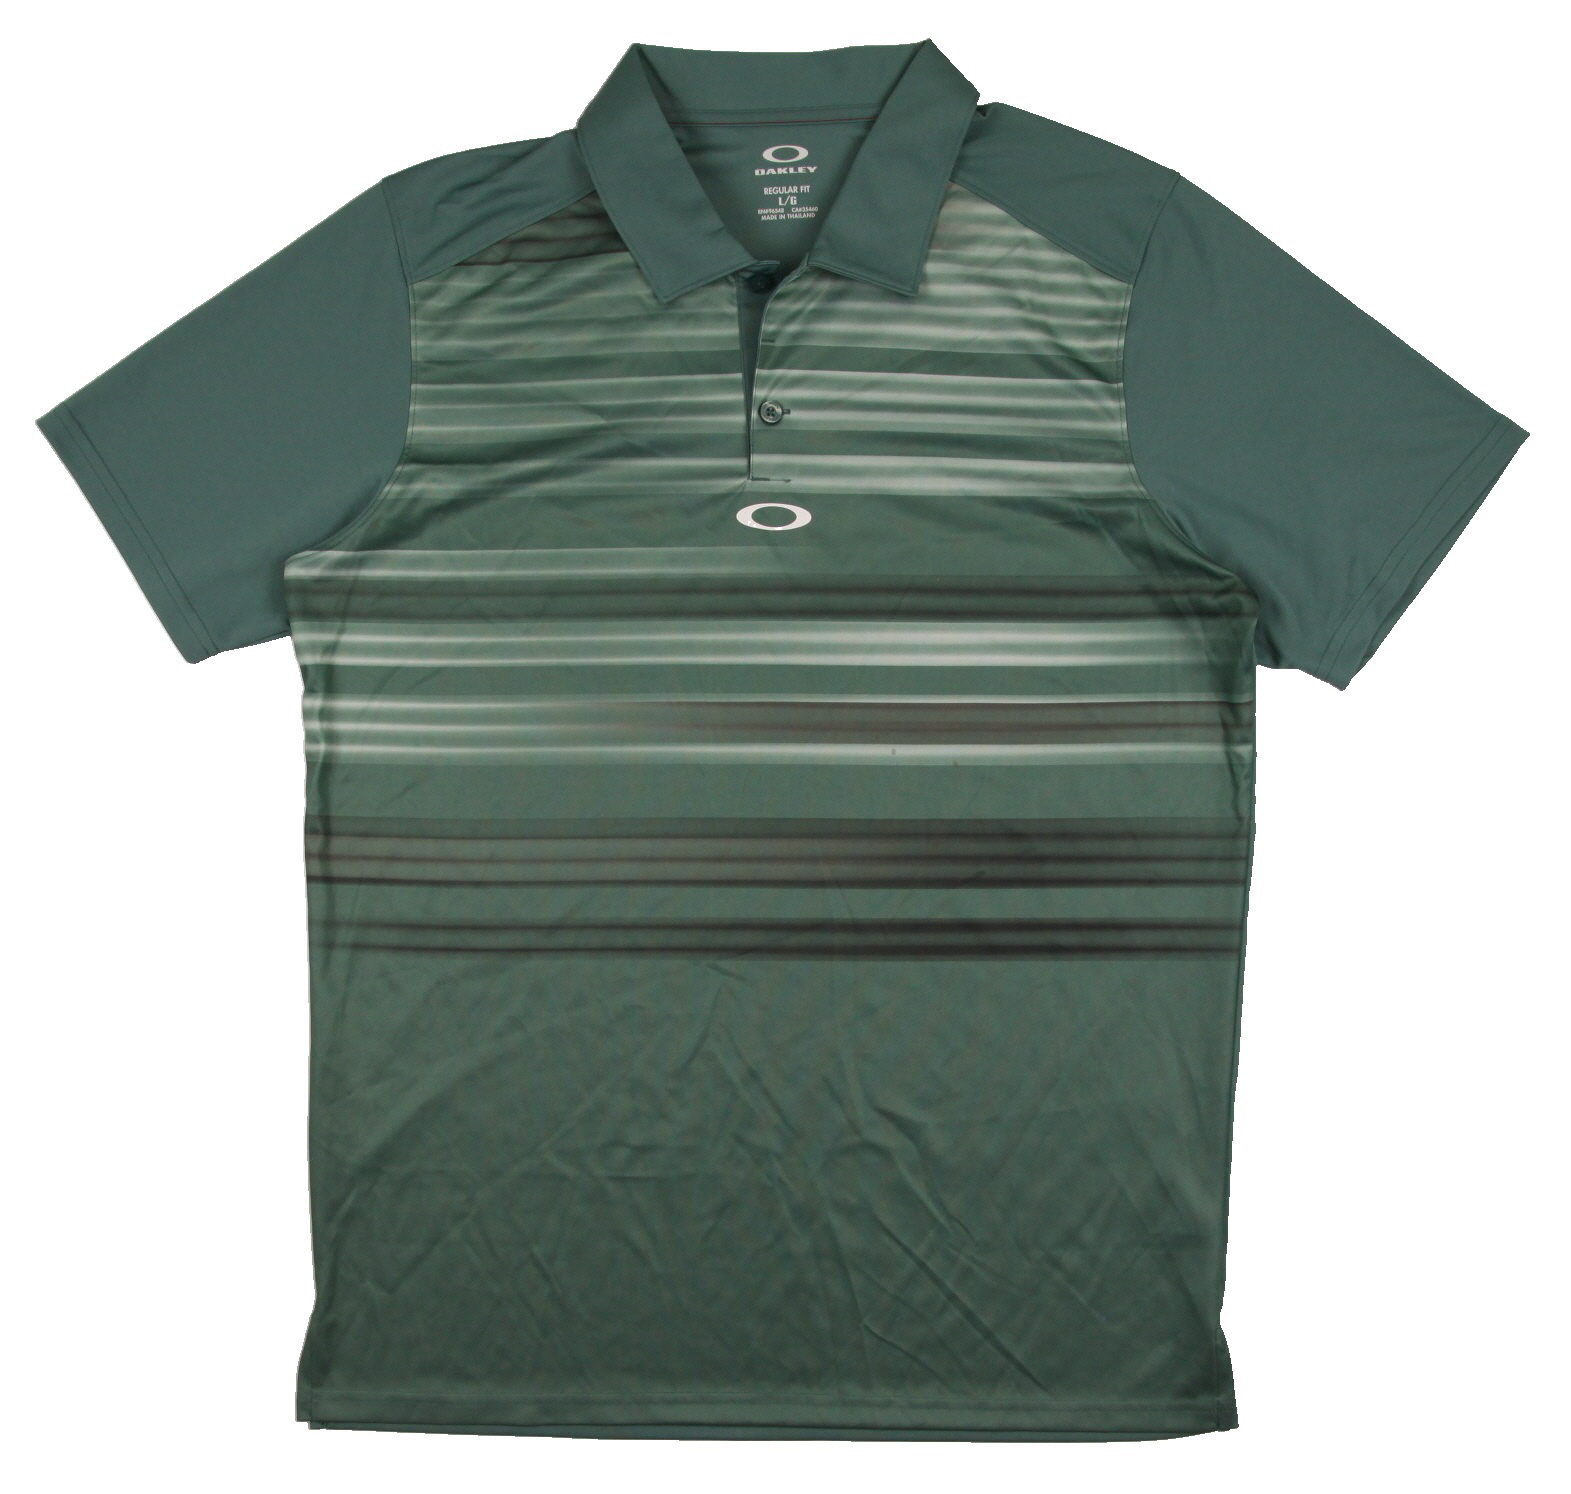 New men 39 s oakley clifford polo golf shirt forest green for Forest green polo shirts